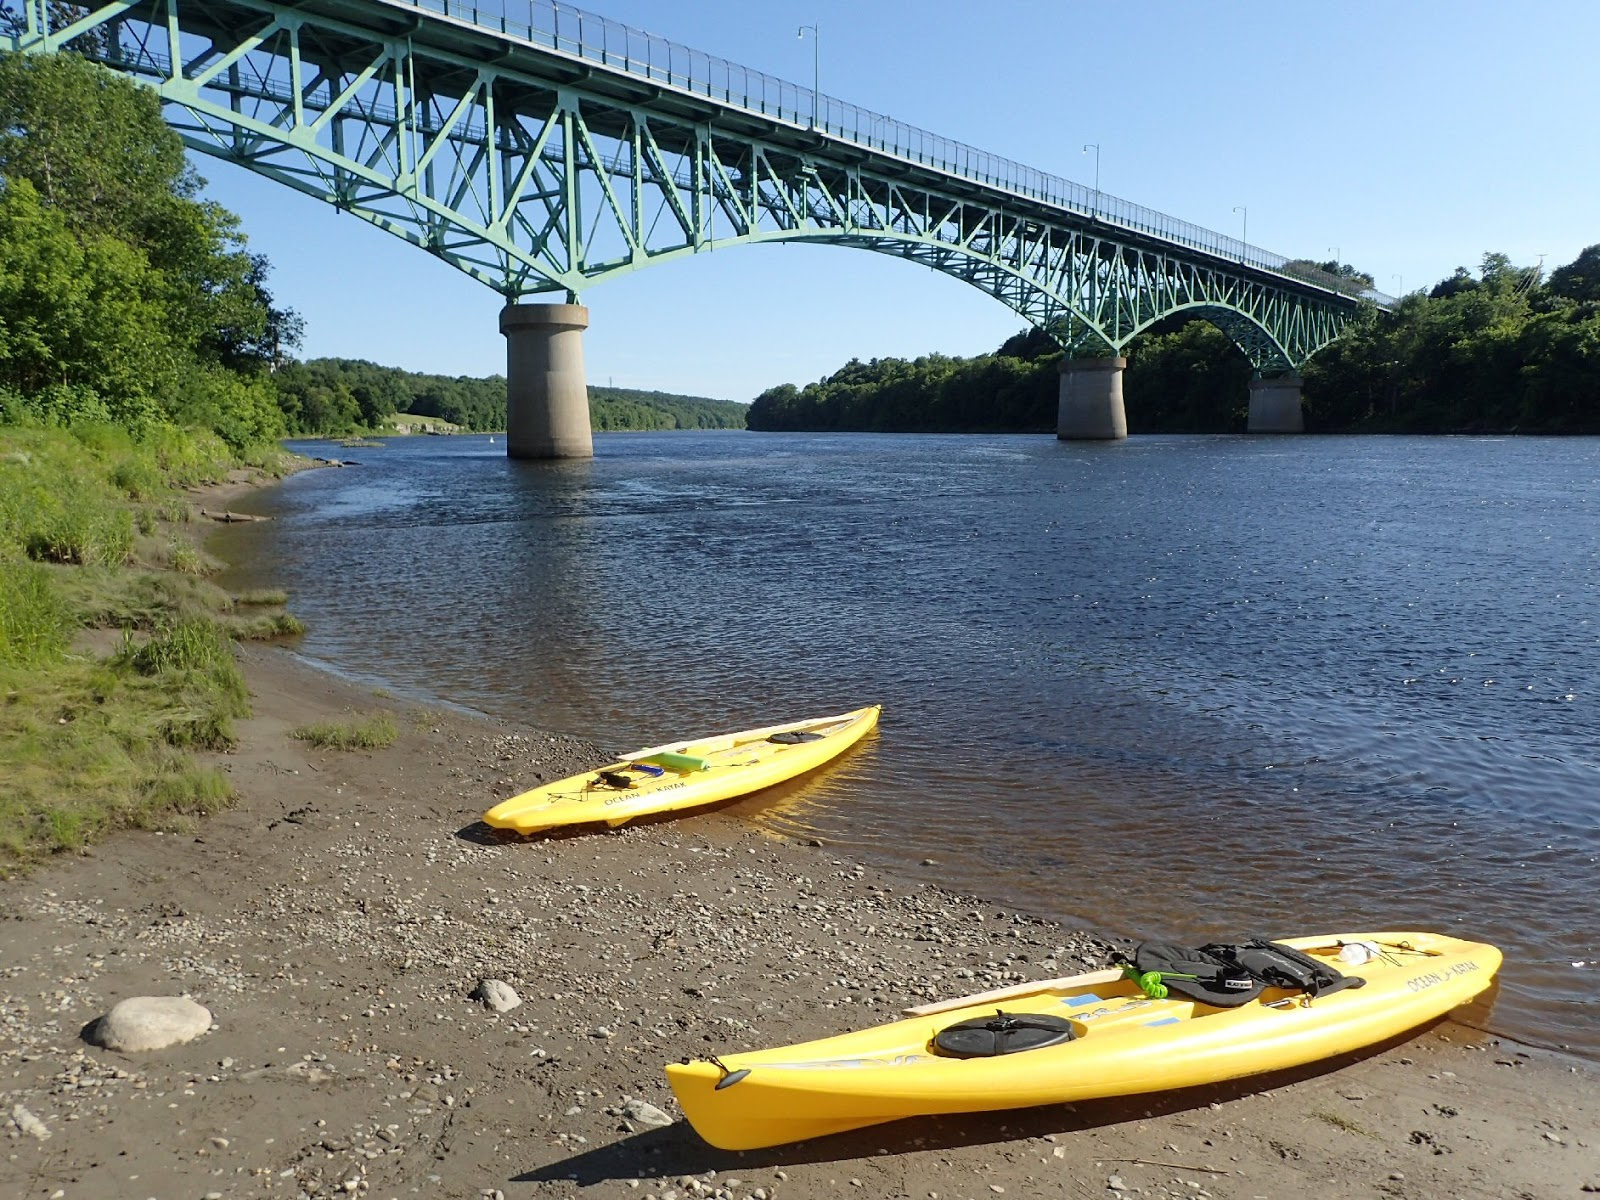 Penobscotpaddles kennebec river augusta me wildlife and current kennebec river augusta me wildlife and current geenschuldenfo Gallery